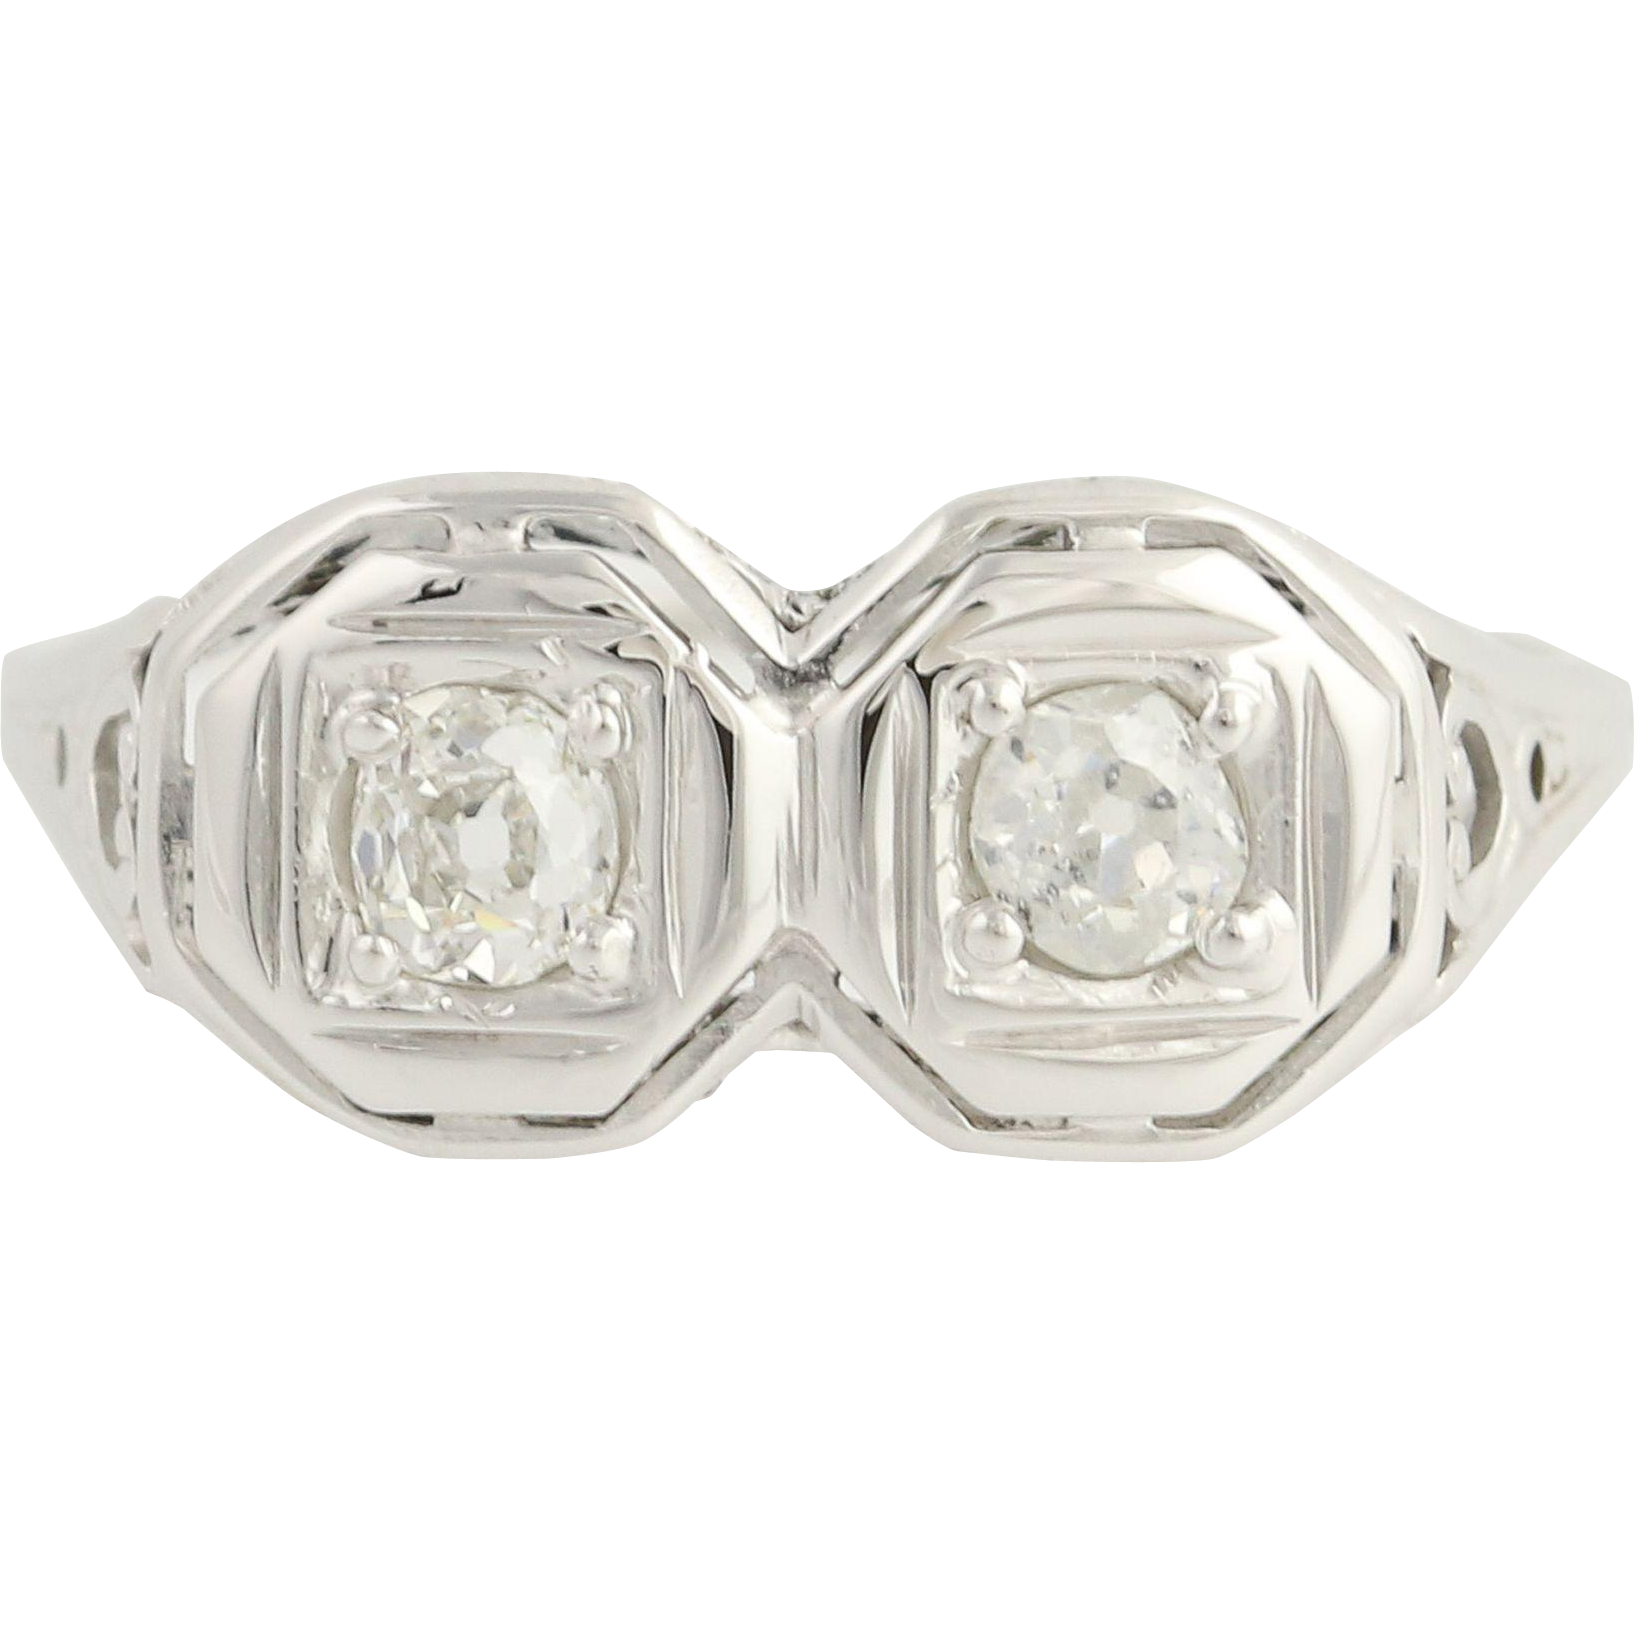 Art Deco 2-Stone Diamond Ring - 18k White Gold Filigree Women's Vintage 0.40ctw